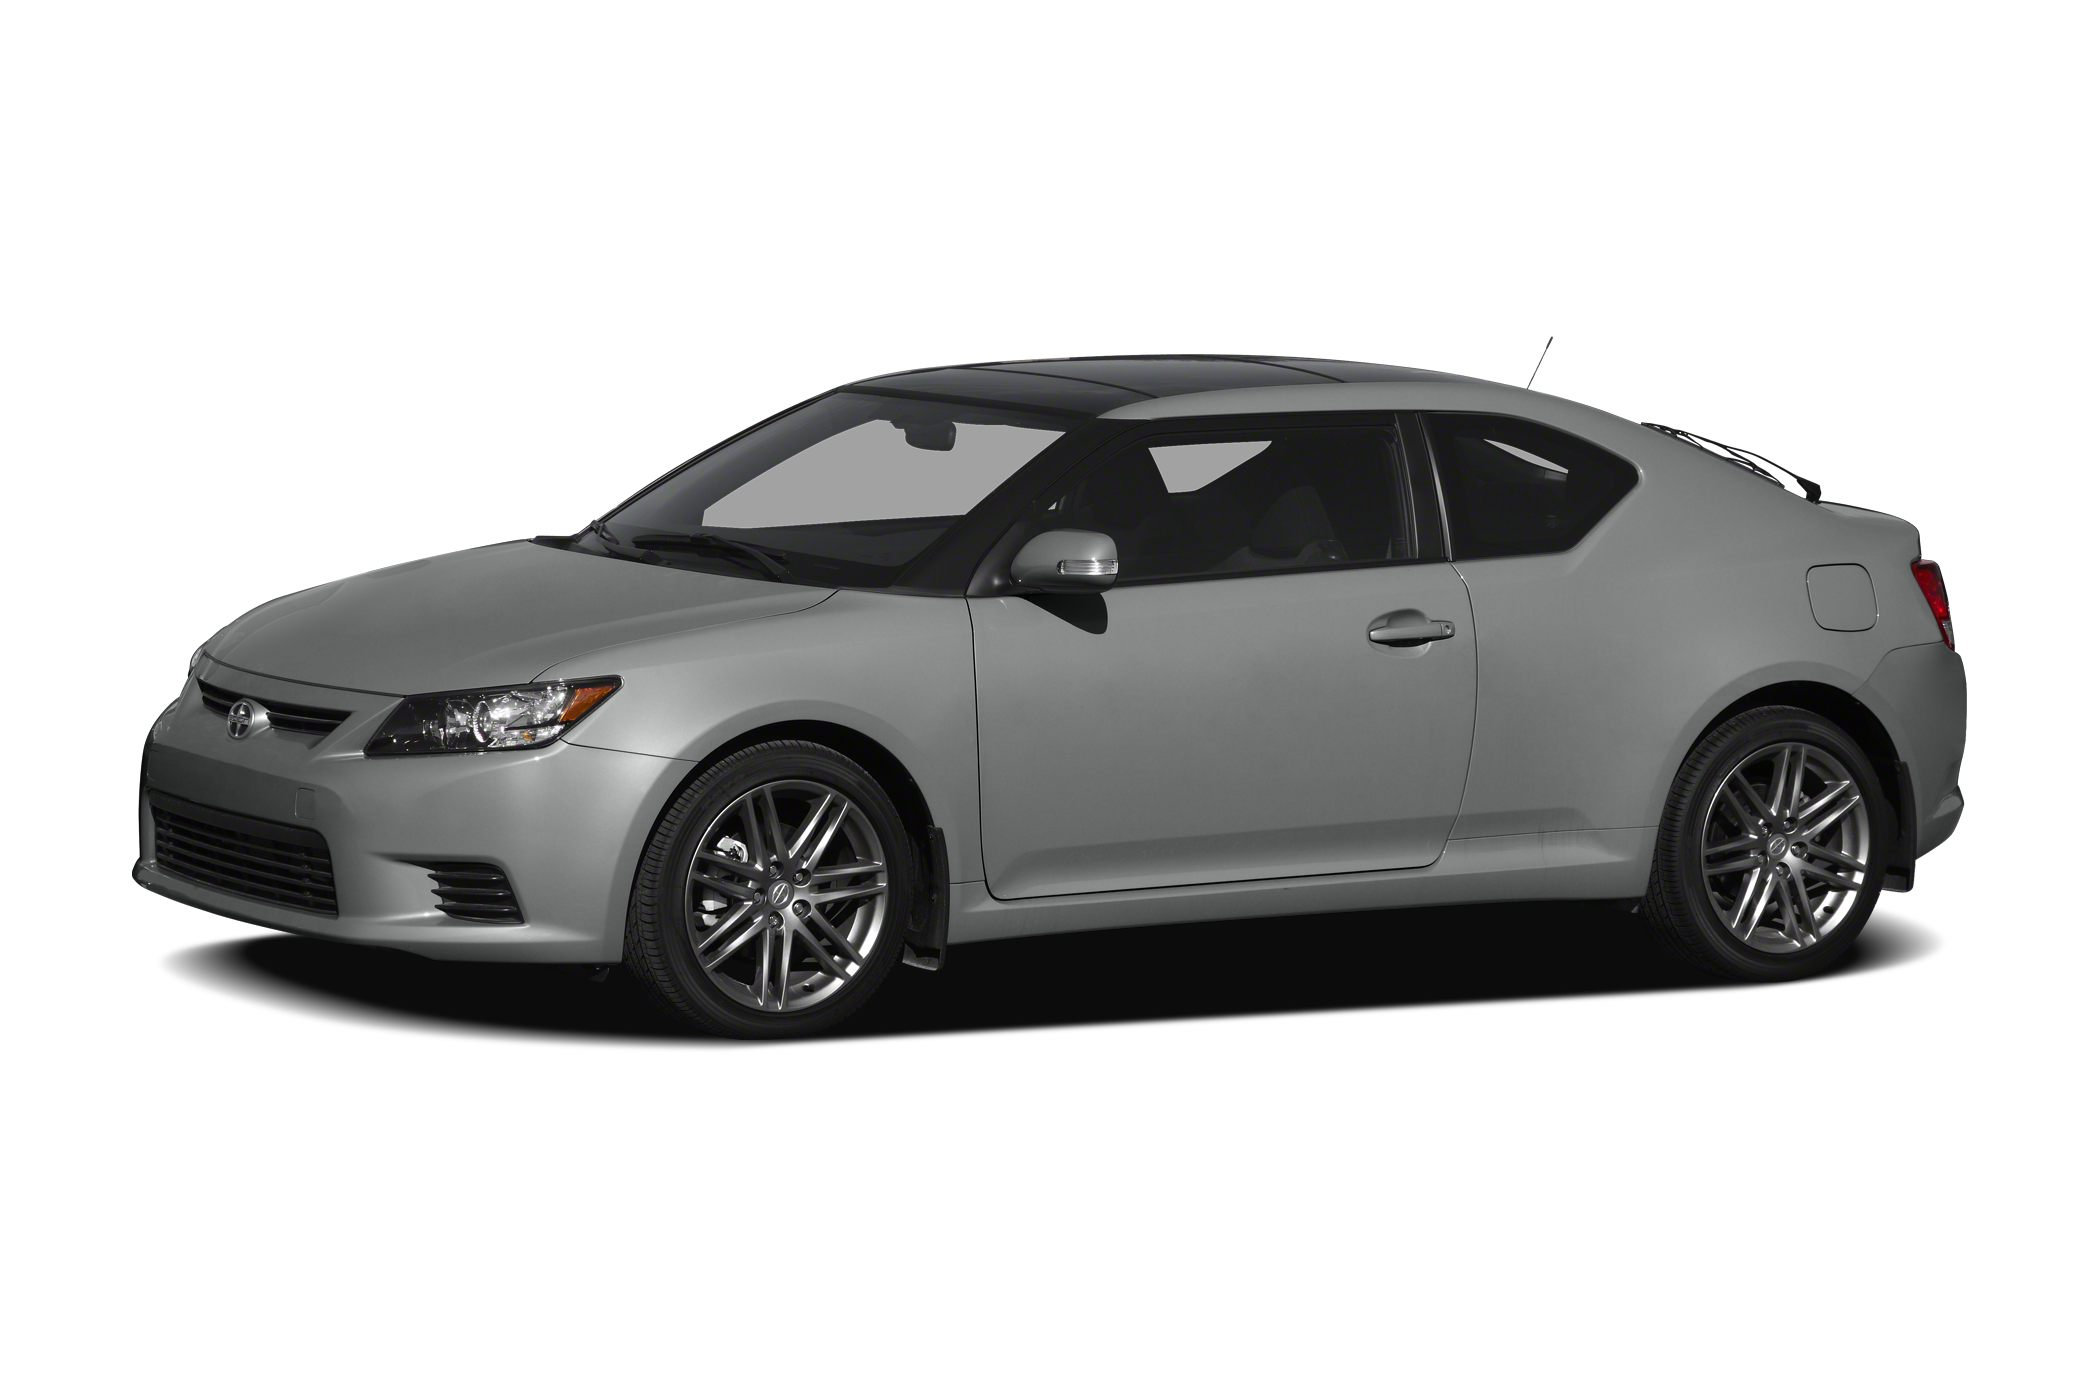 2011 Scion TC Base Coupe for sale in Norwich for $12,995 with 74,260 miles.